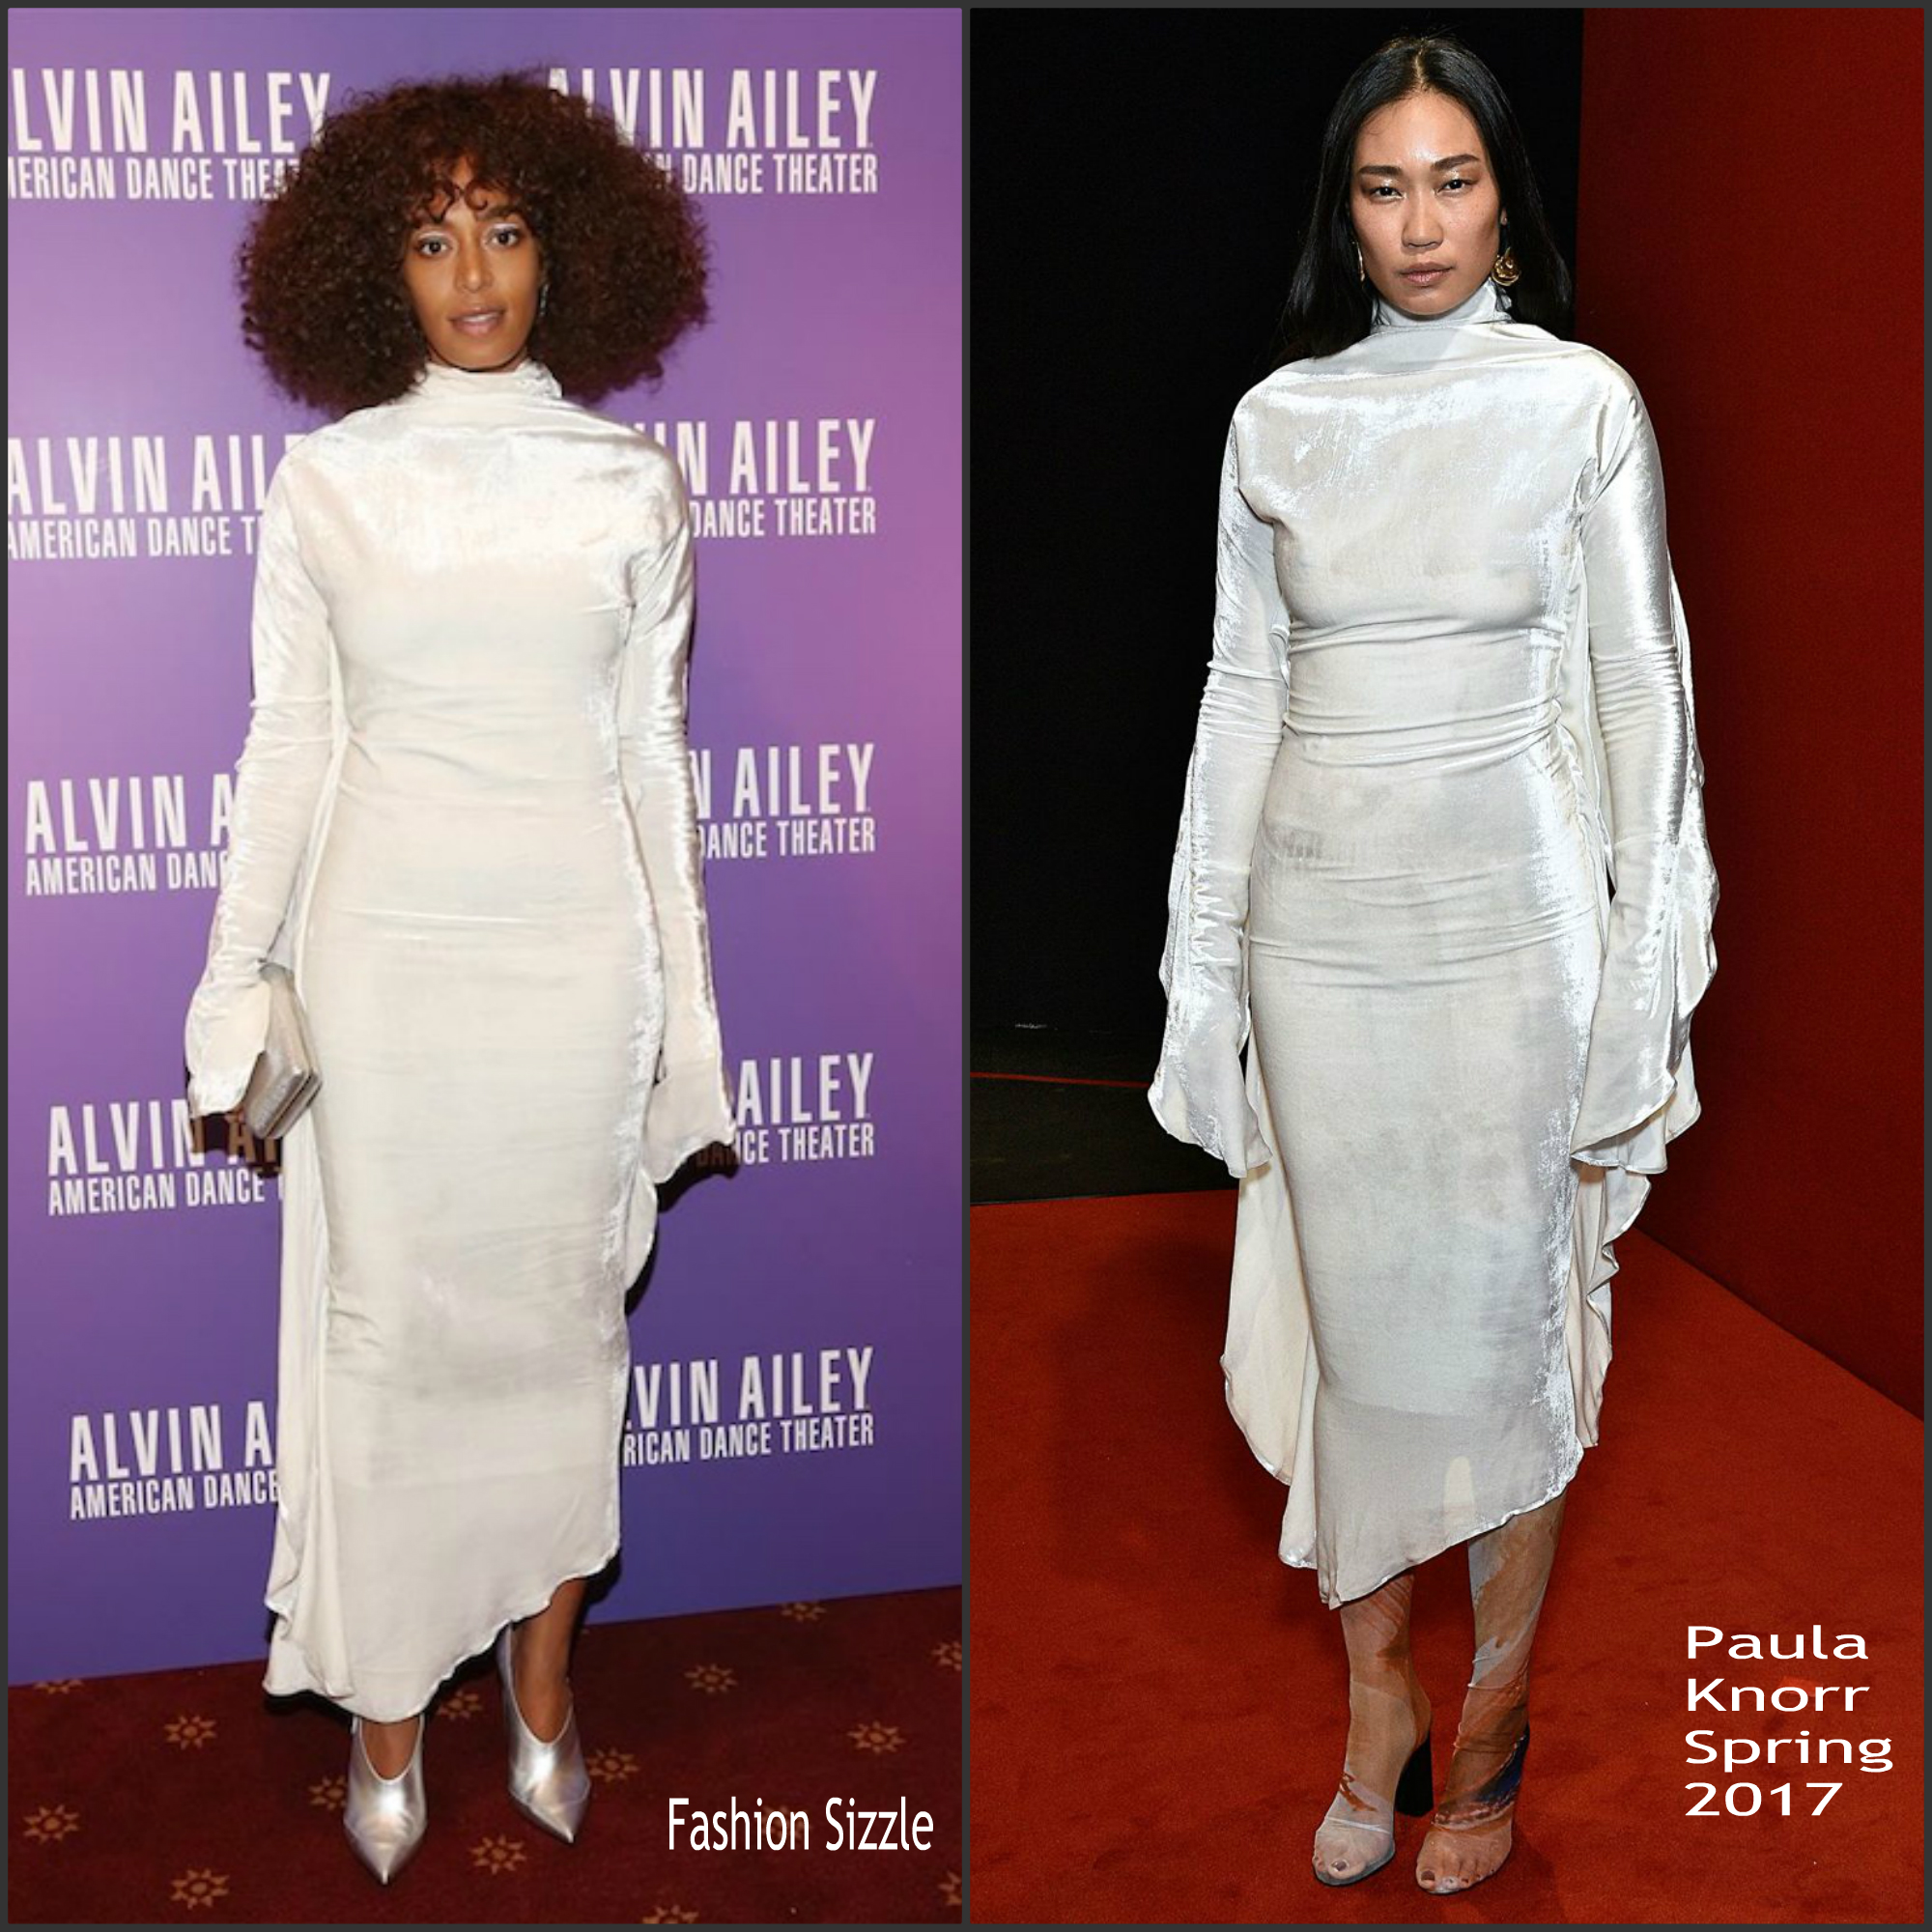 solange-knowles-in-paula-knorr-at-the-ailey-and-jazz-opening-night-gala-in-new-york